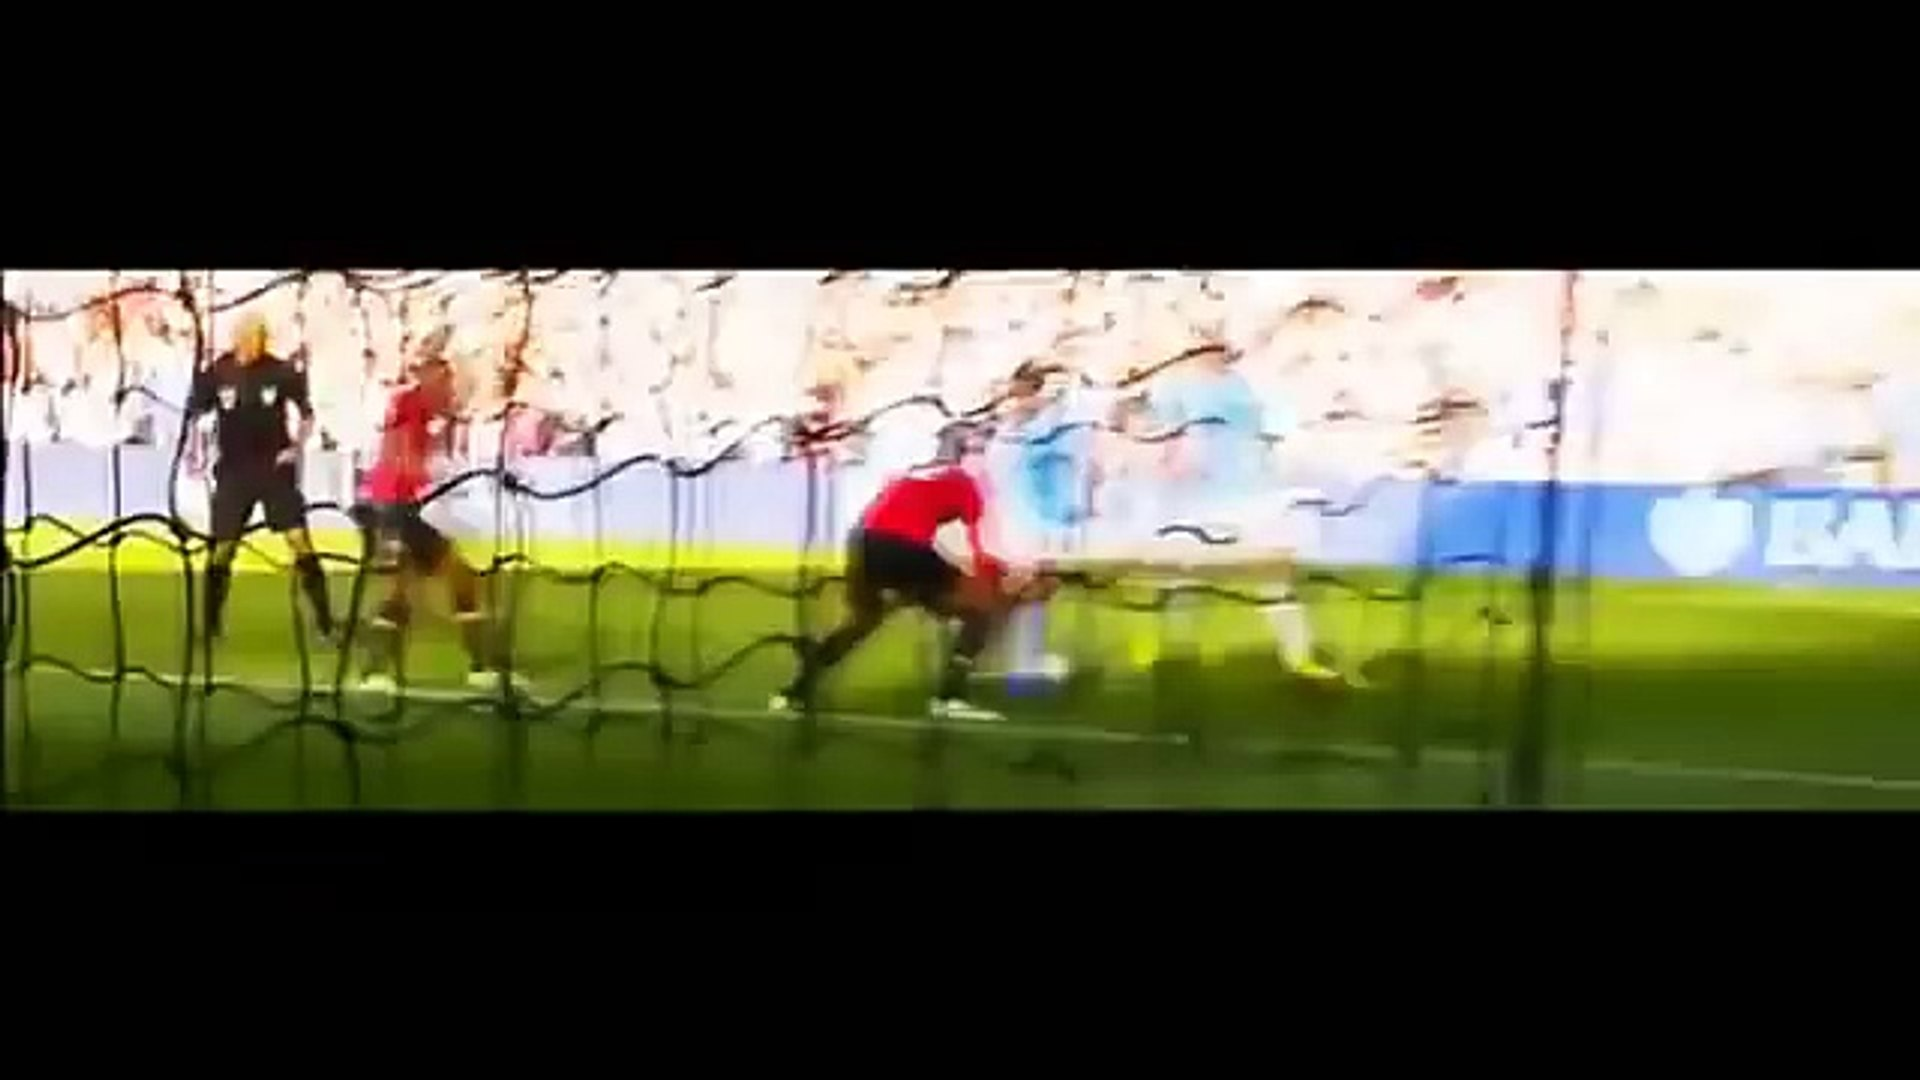 Manchester City vs Manchester United 4 0 Aguero Goal 21 9 2013